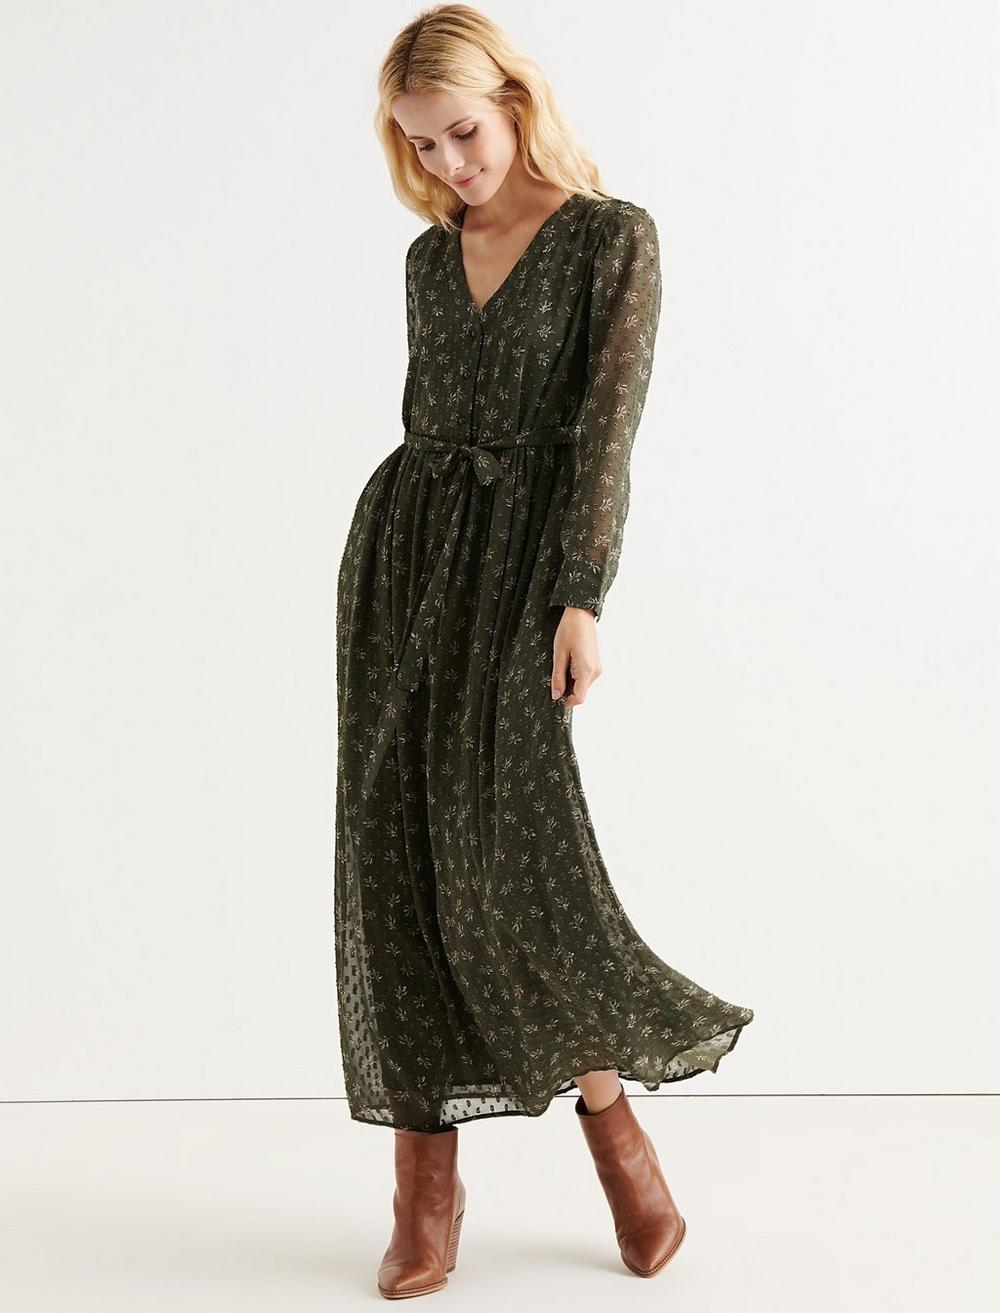 BUTTON FRONT MAXI, image 1